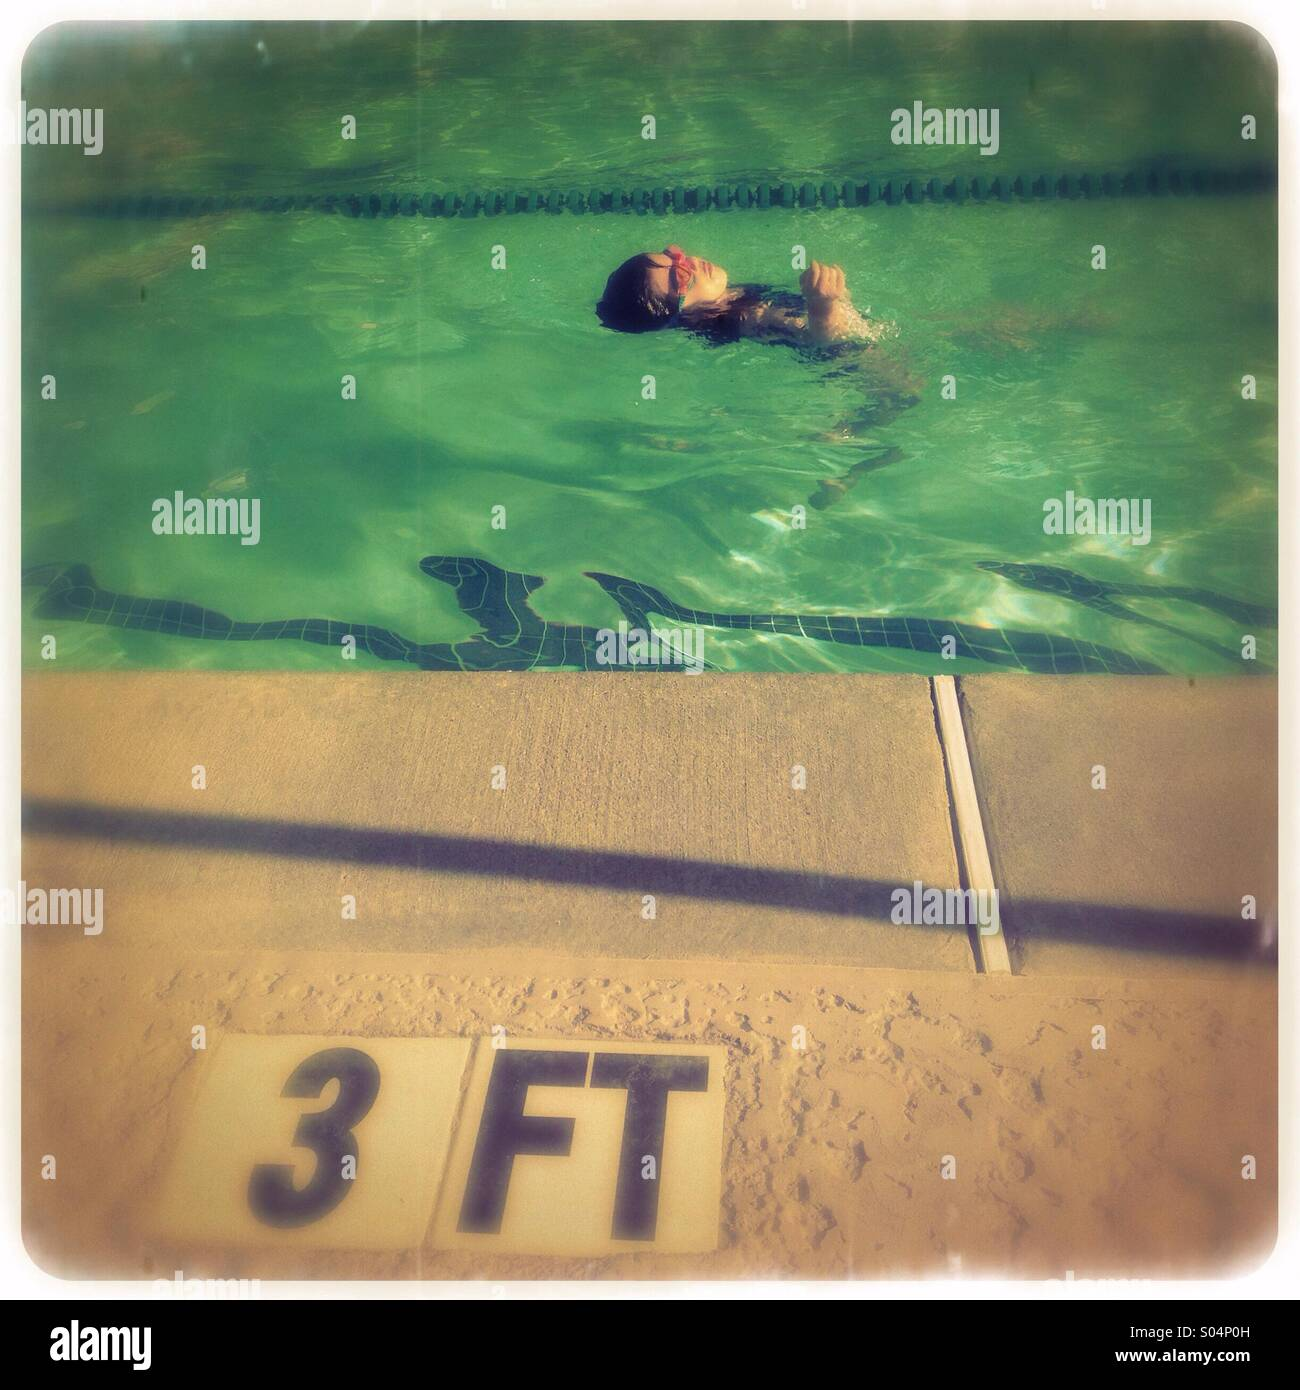 Little practicing how to swim - Stock Image